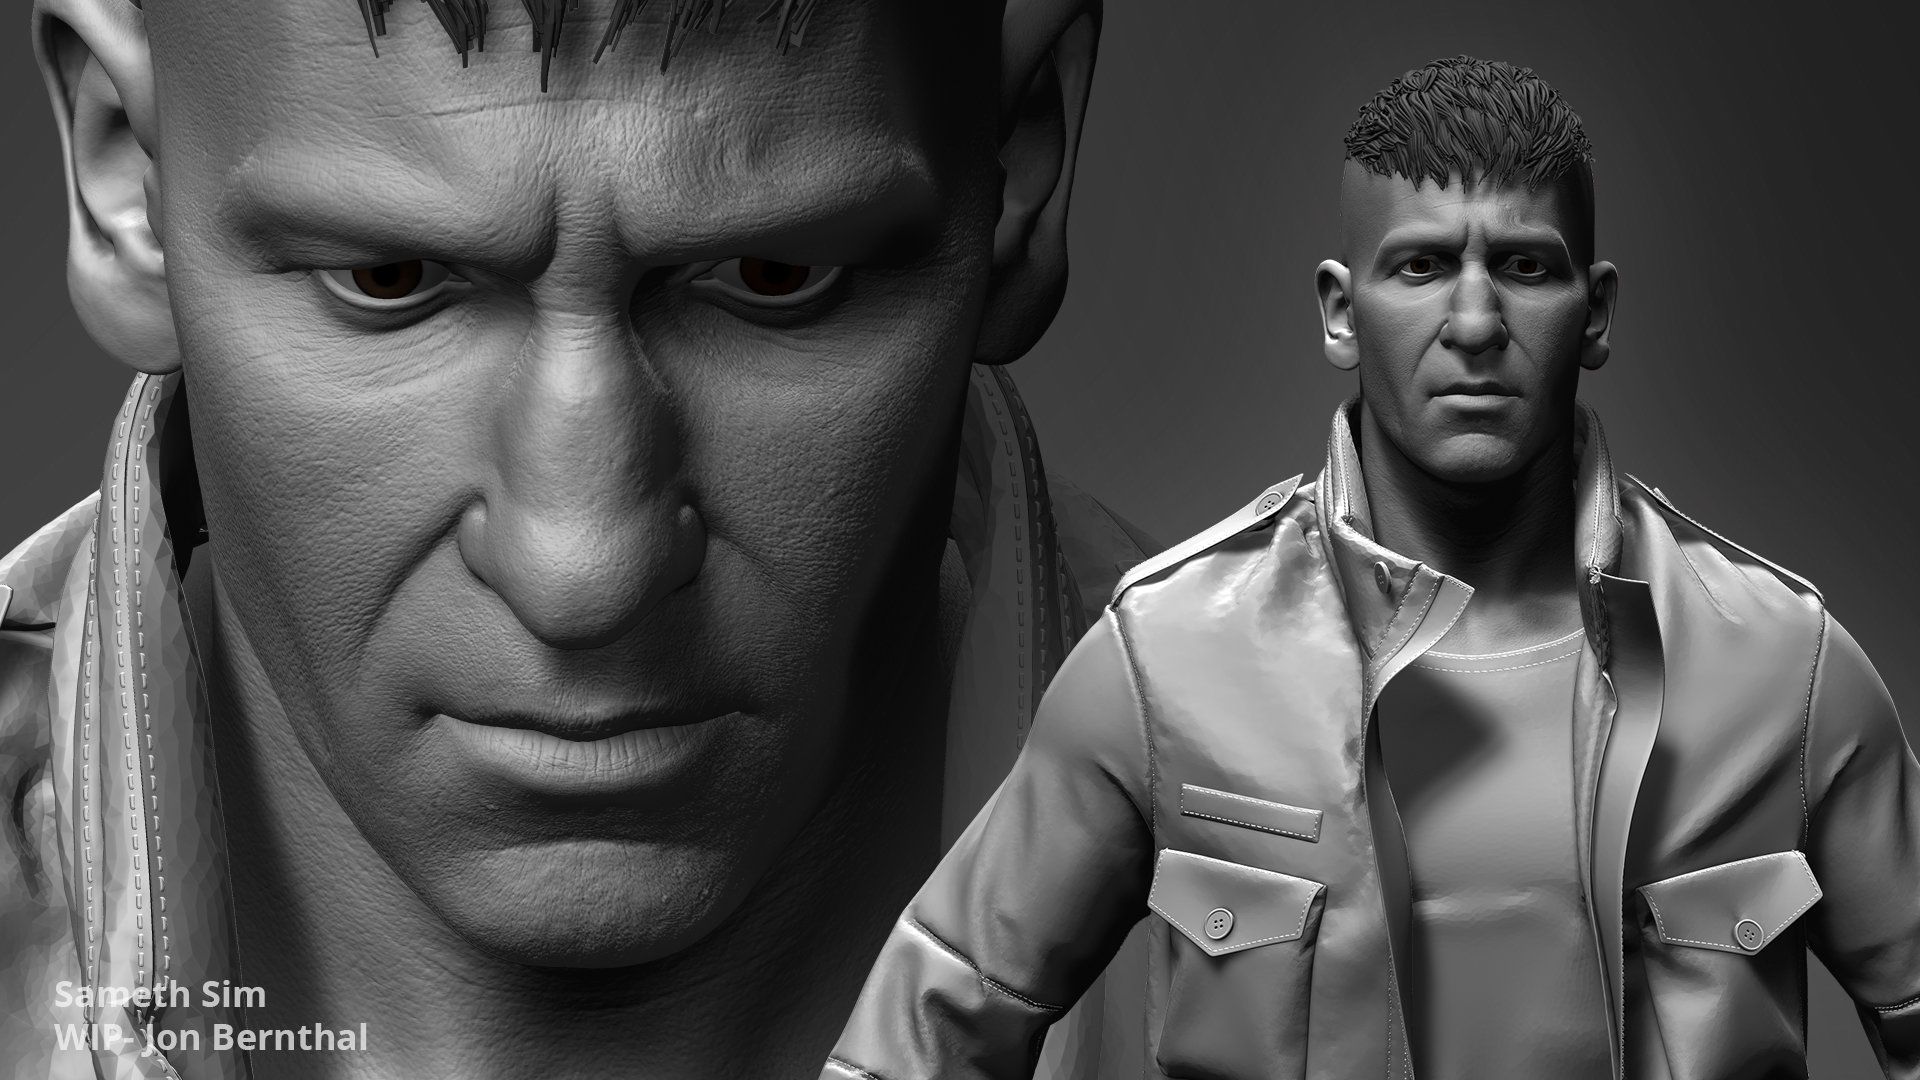 Wip The Punisher Jon Bernthal Polycount